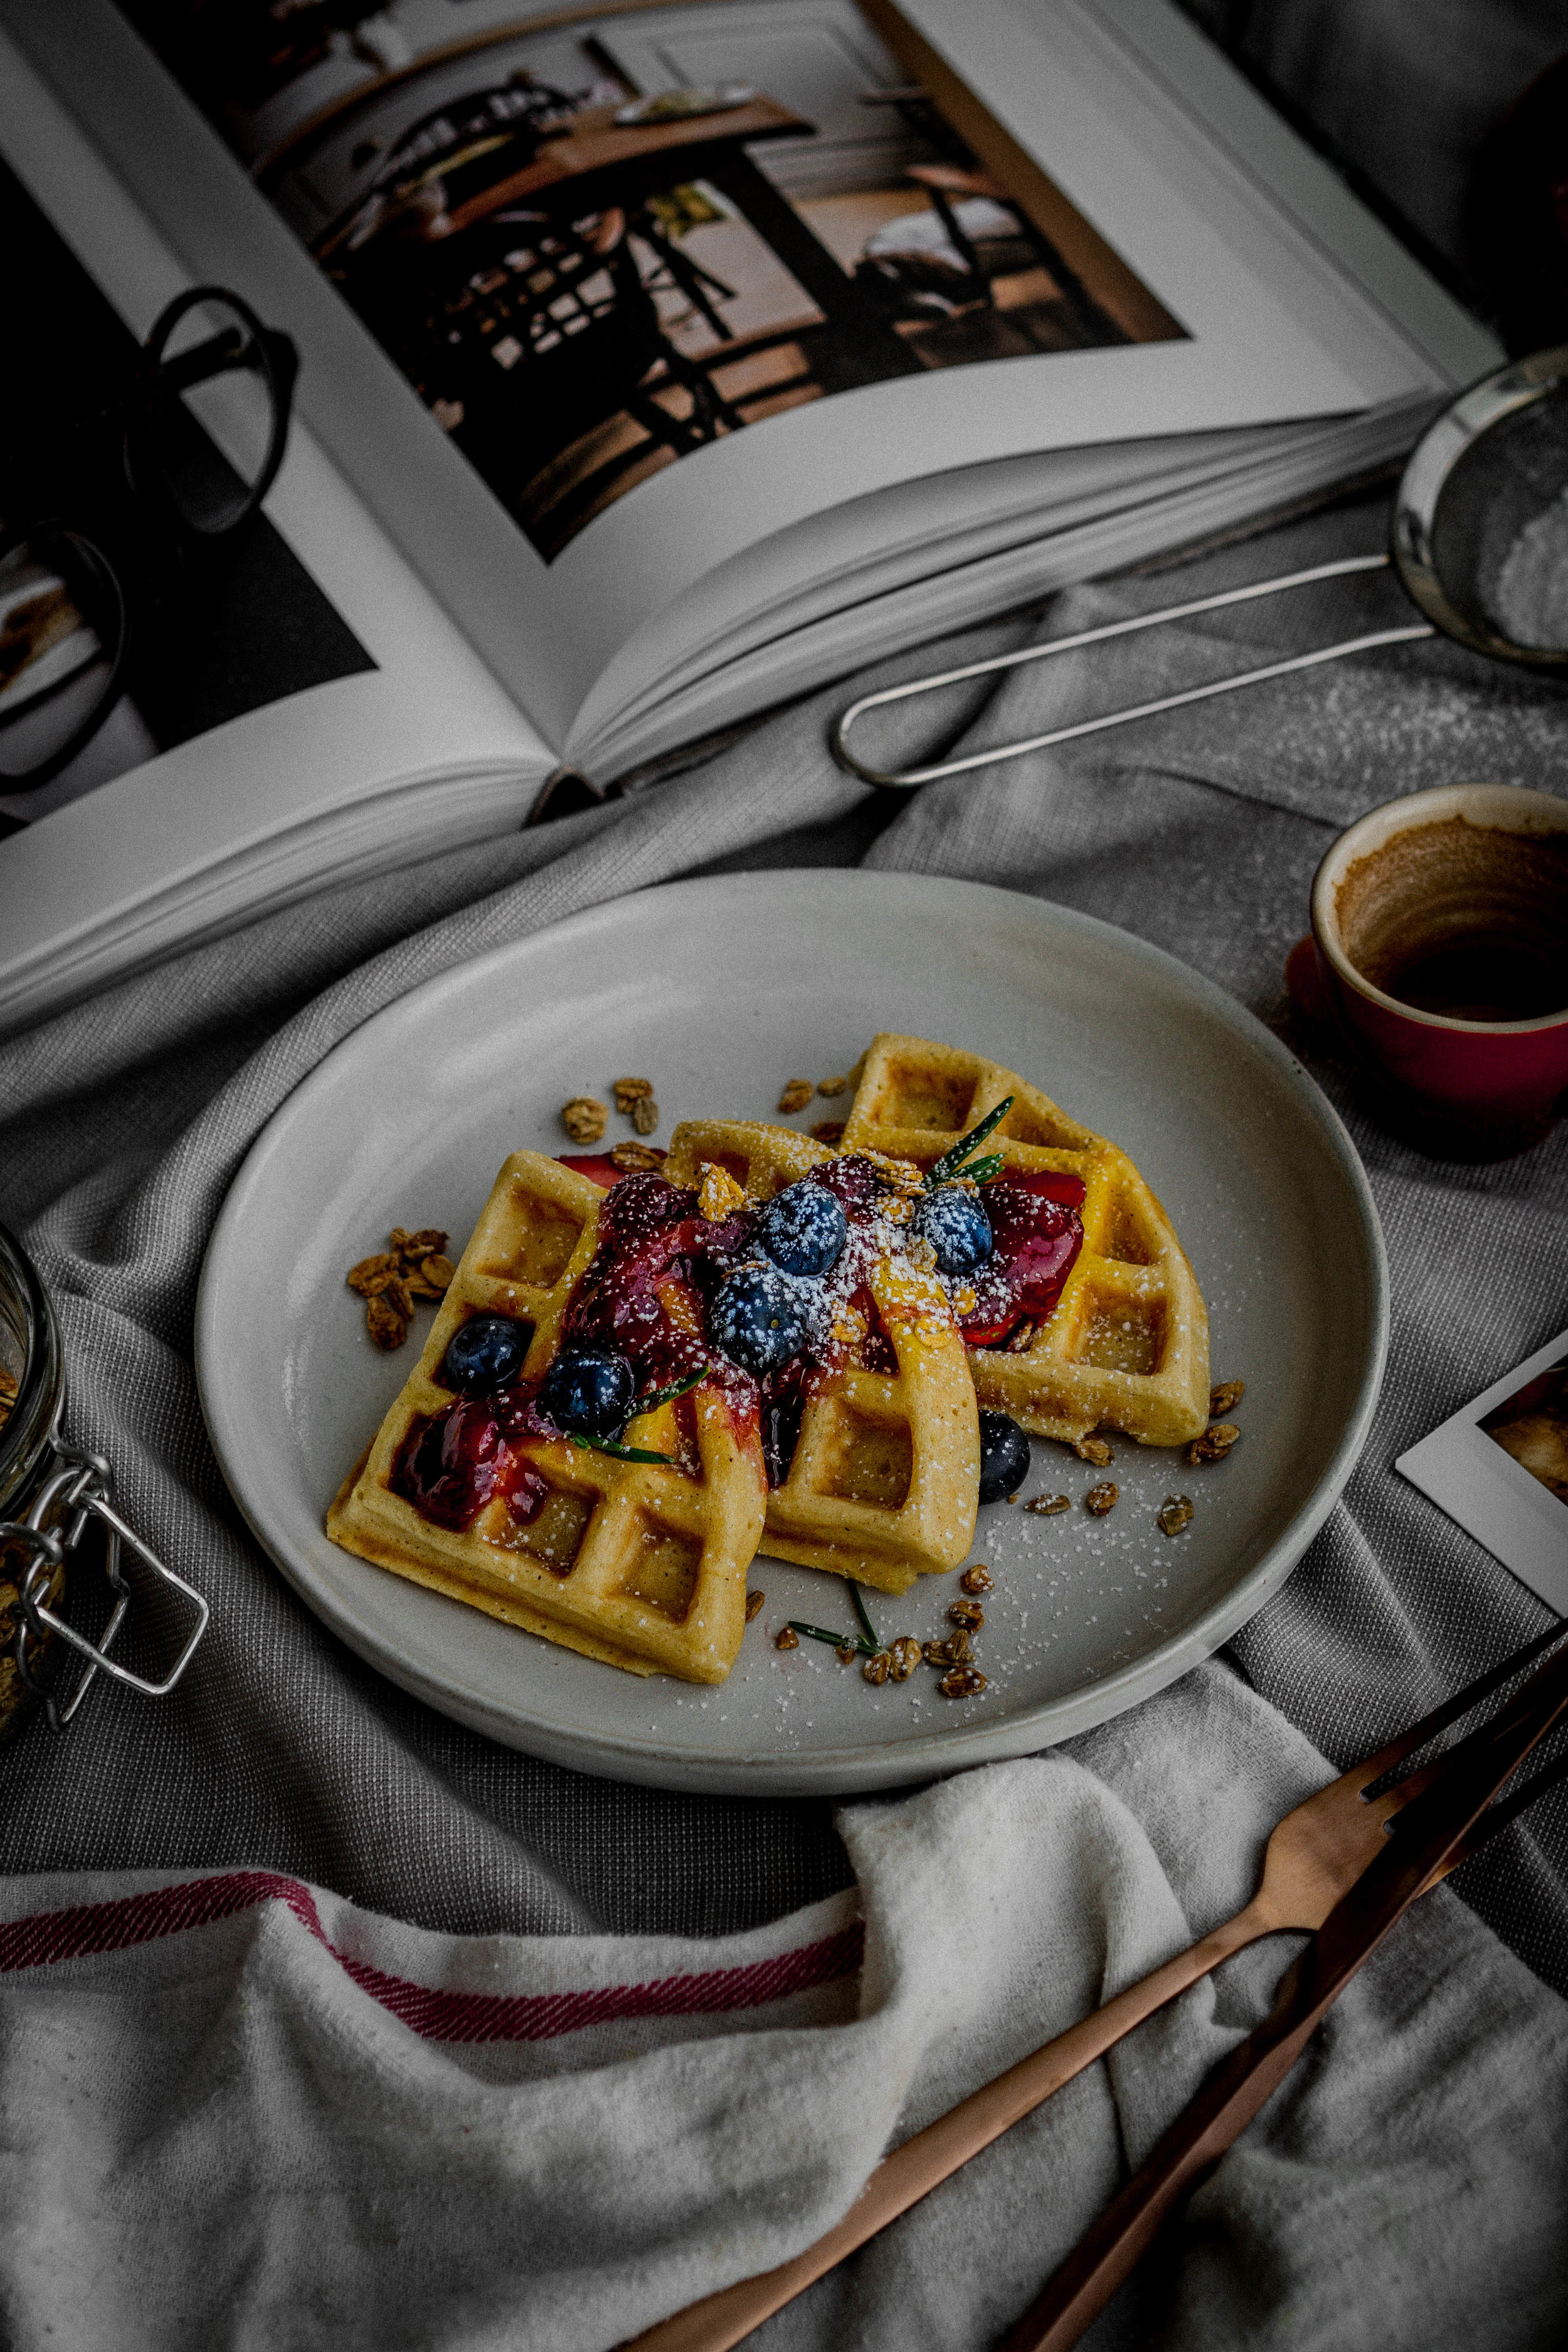 waffle #2: topped with rosemary infused strawberry jam, powdered sugar, blueberries and granola. -